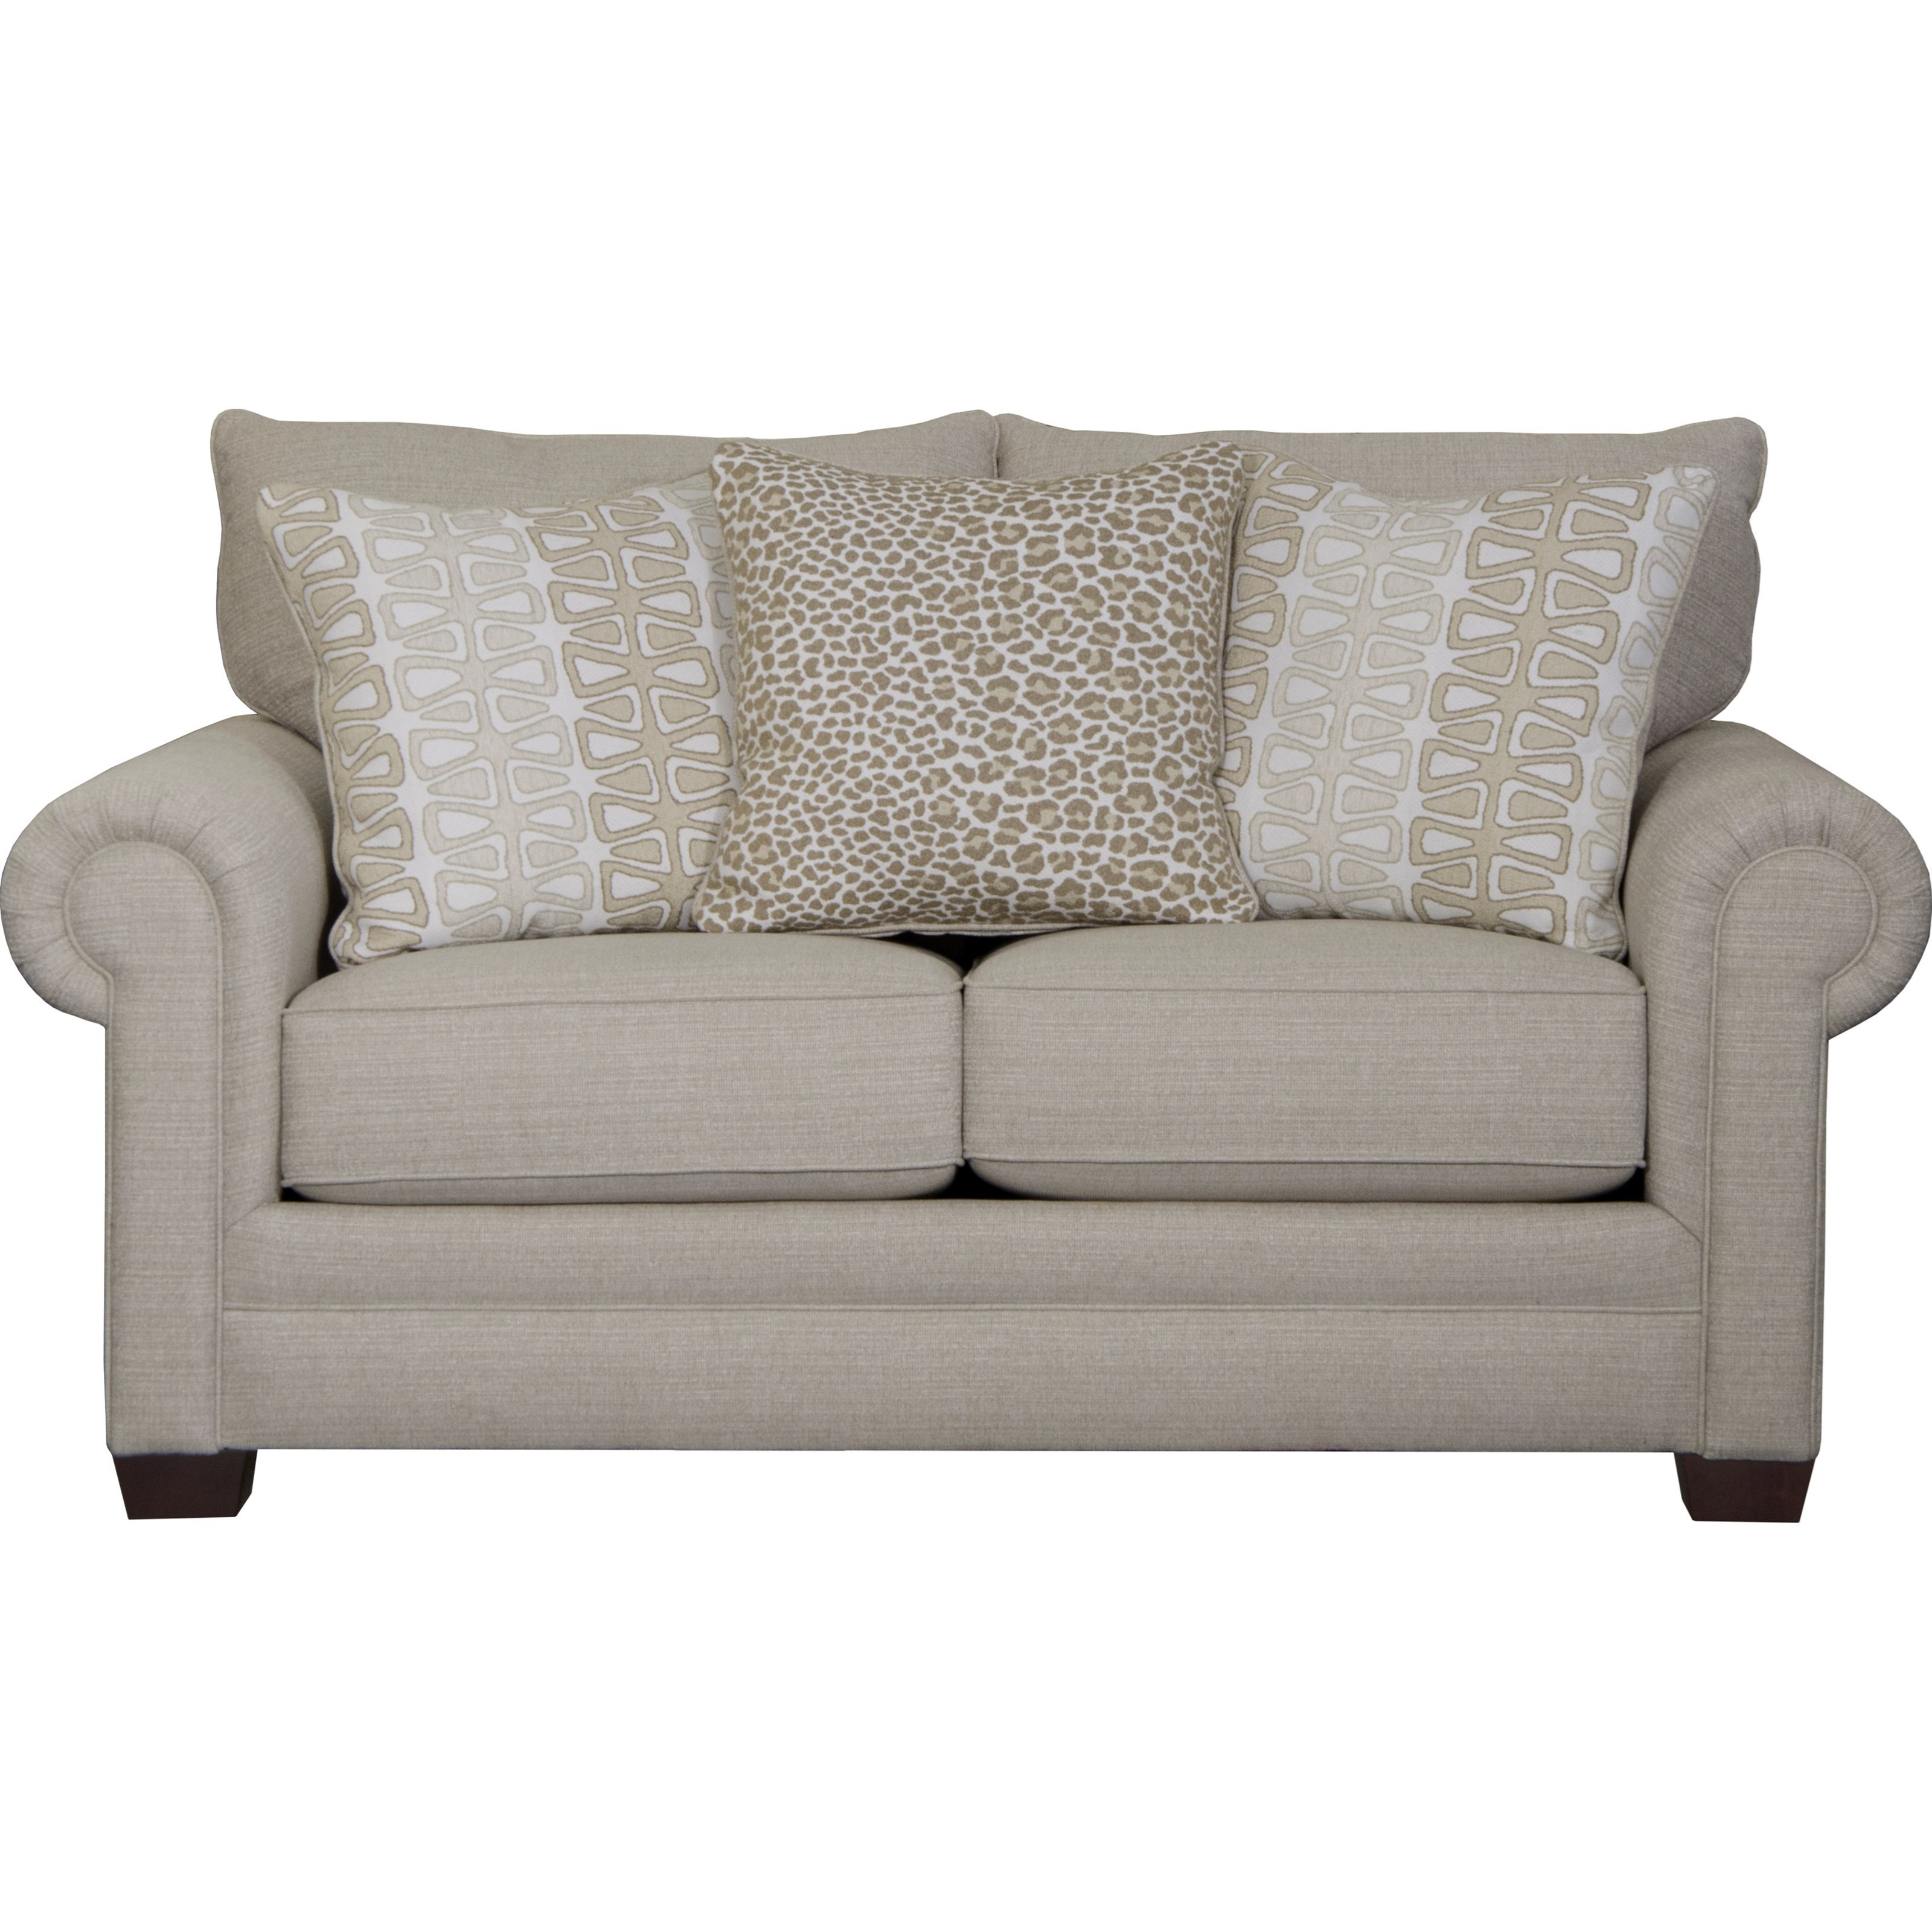 Havana Loveseat by Jackson Furniture at Northeast Factory Direct